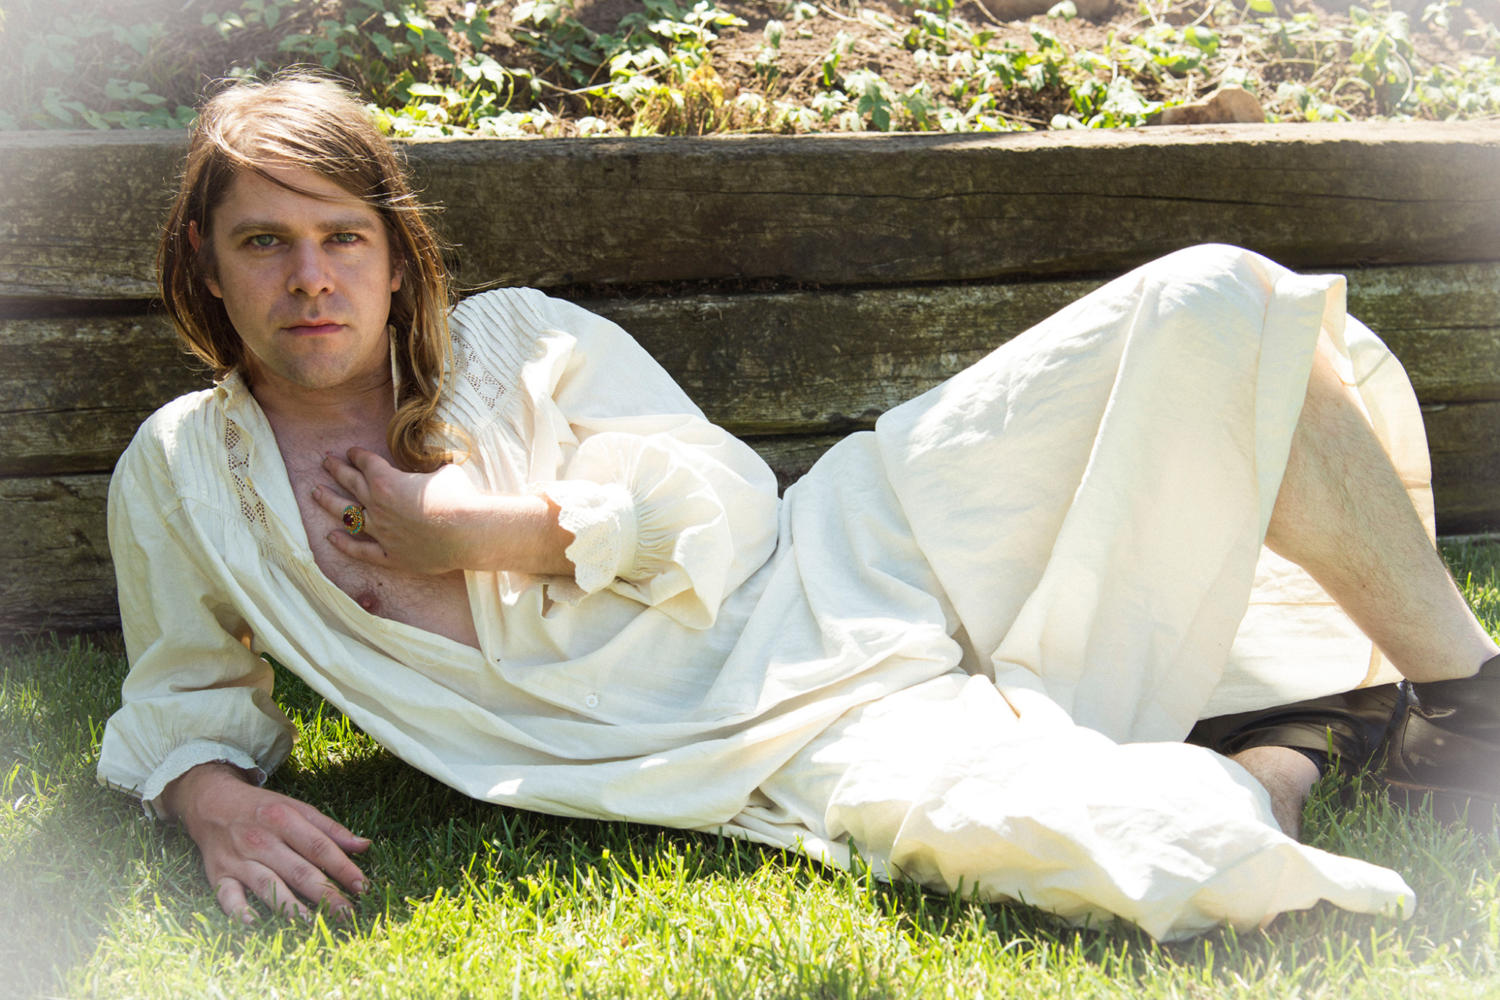 Ariel Pink and Black Lips announce joint North America tour